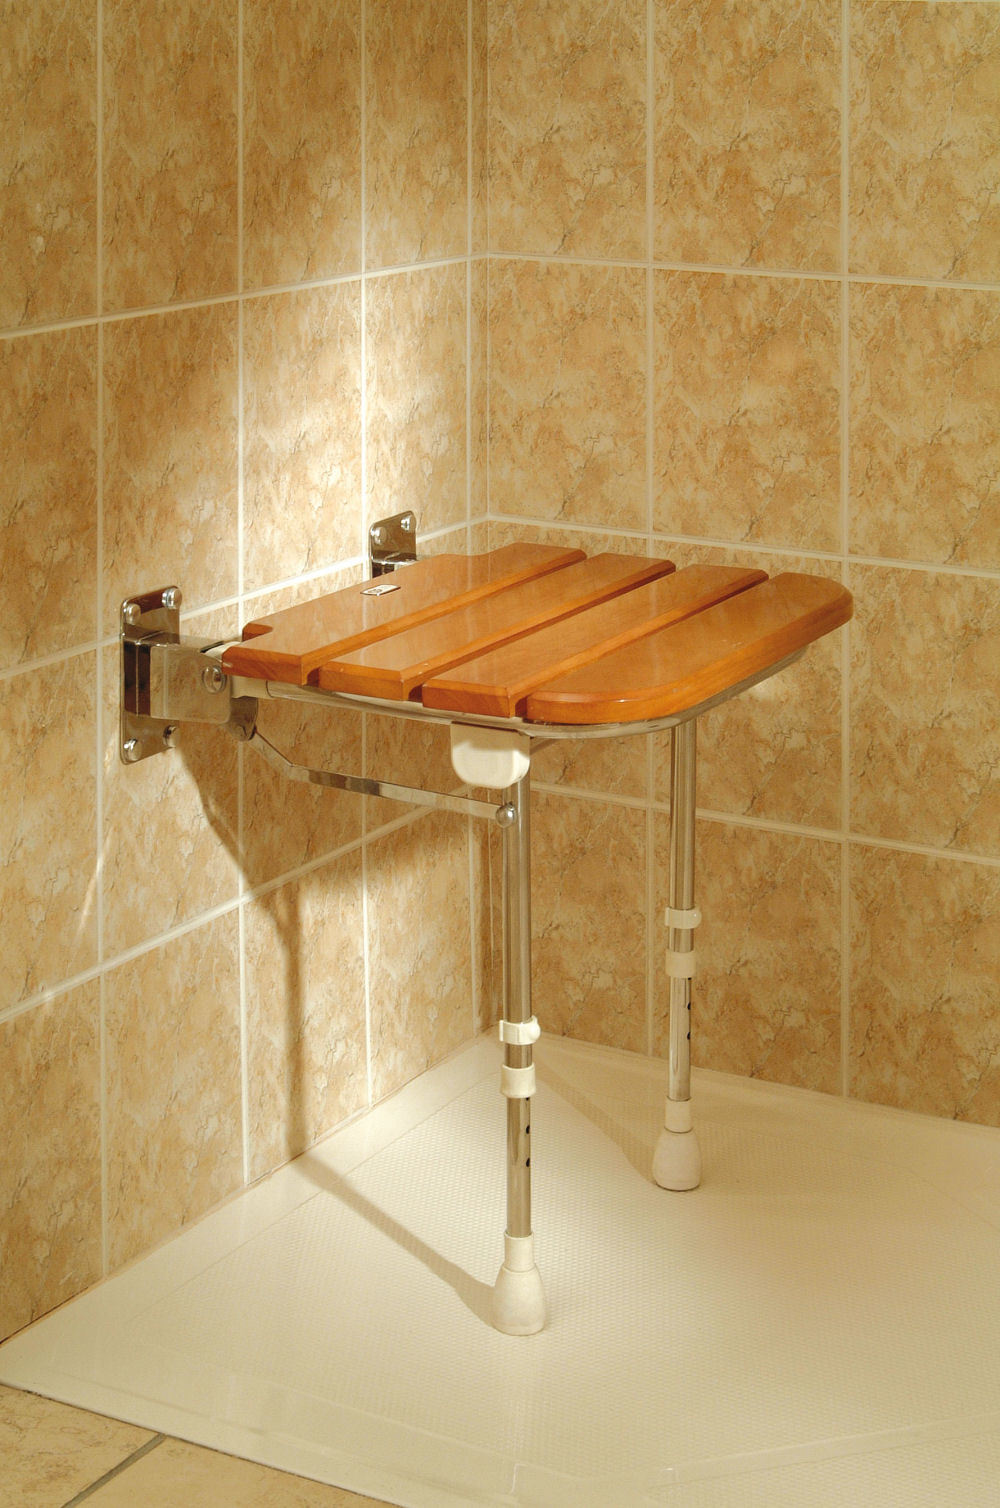 Fold up wooden slatted seat with legs shower seats wall